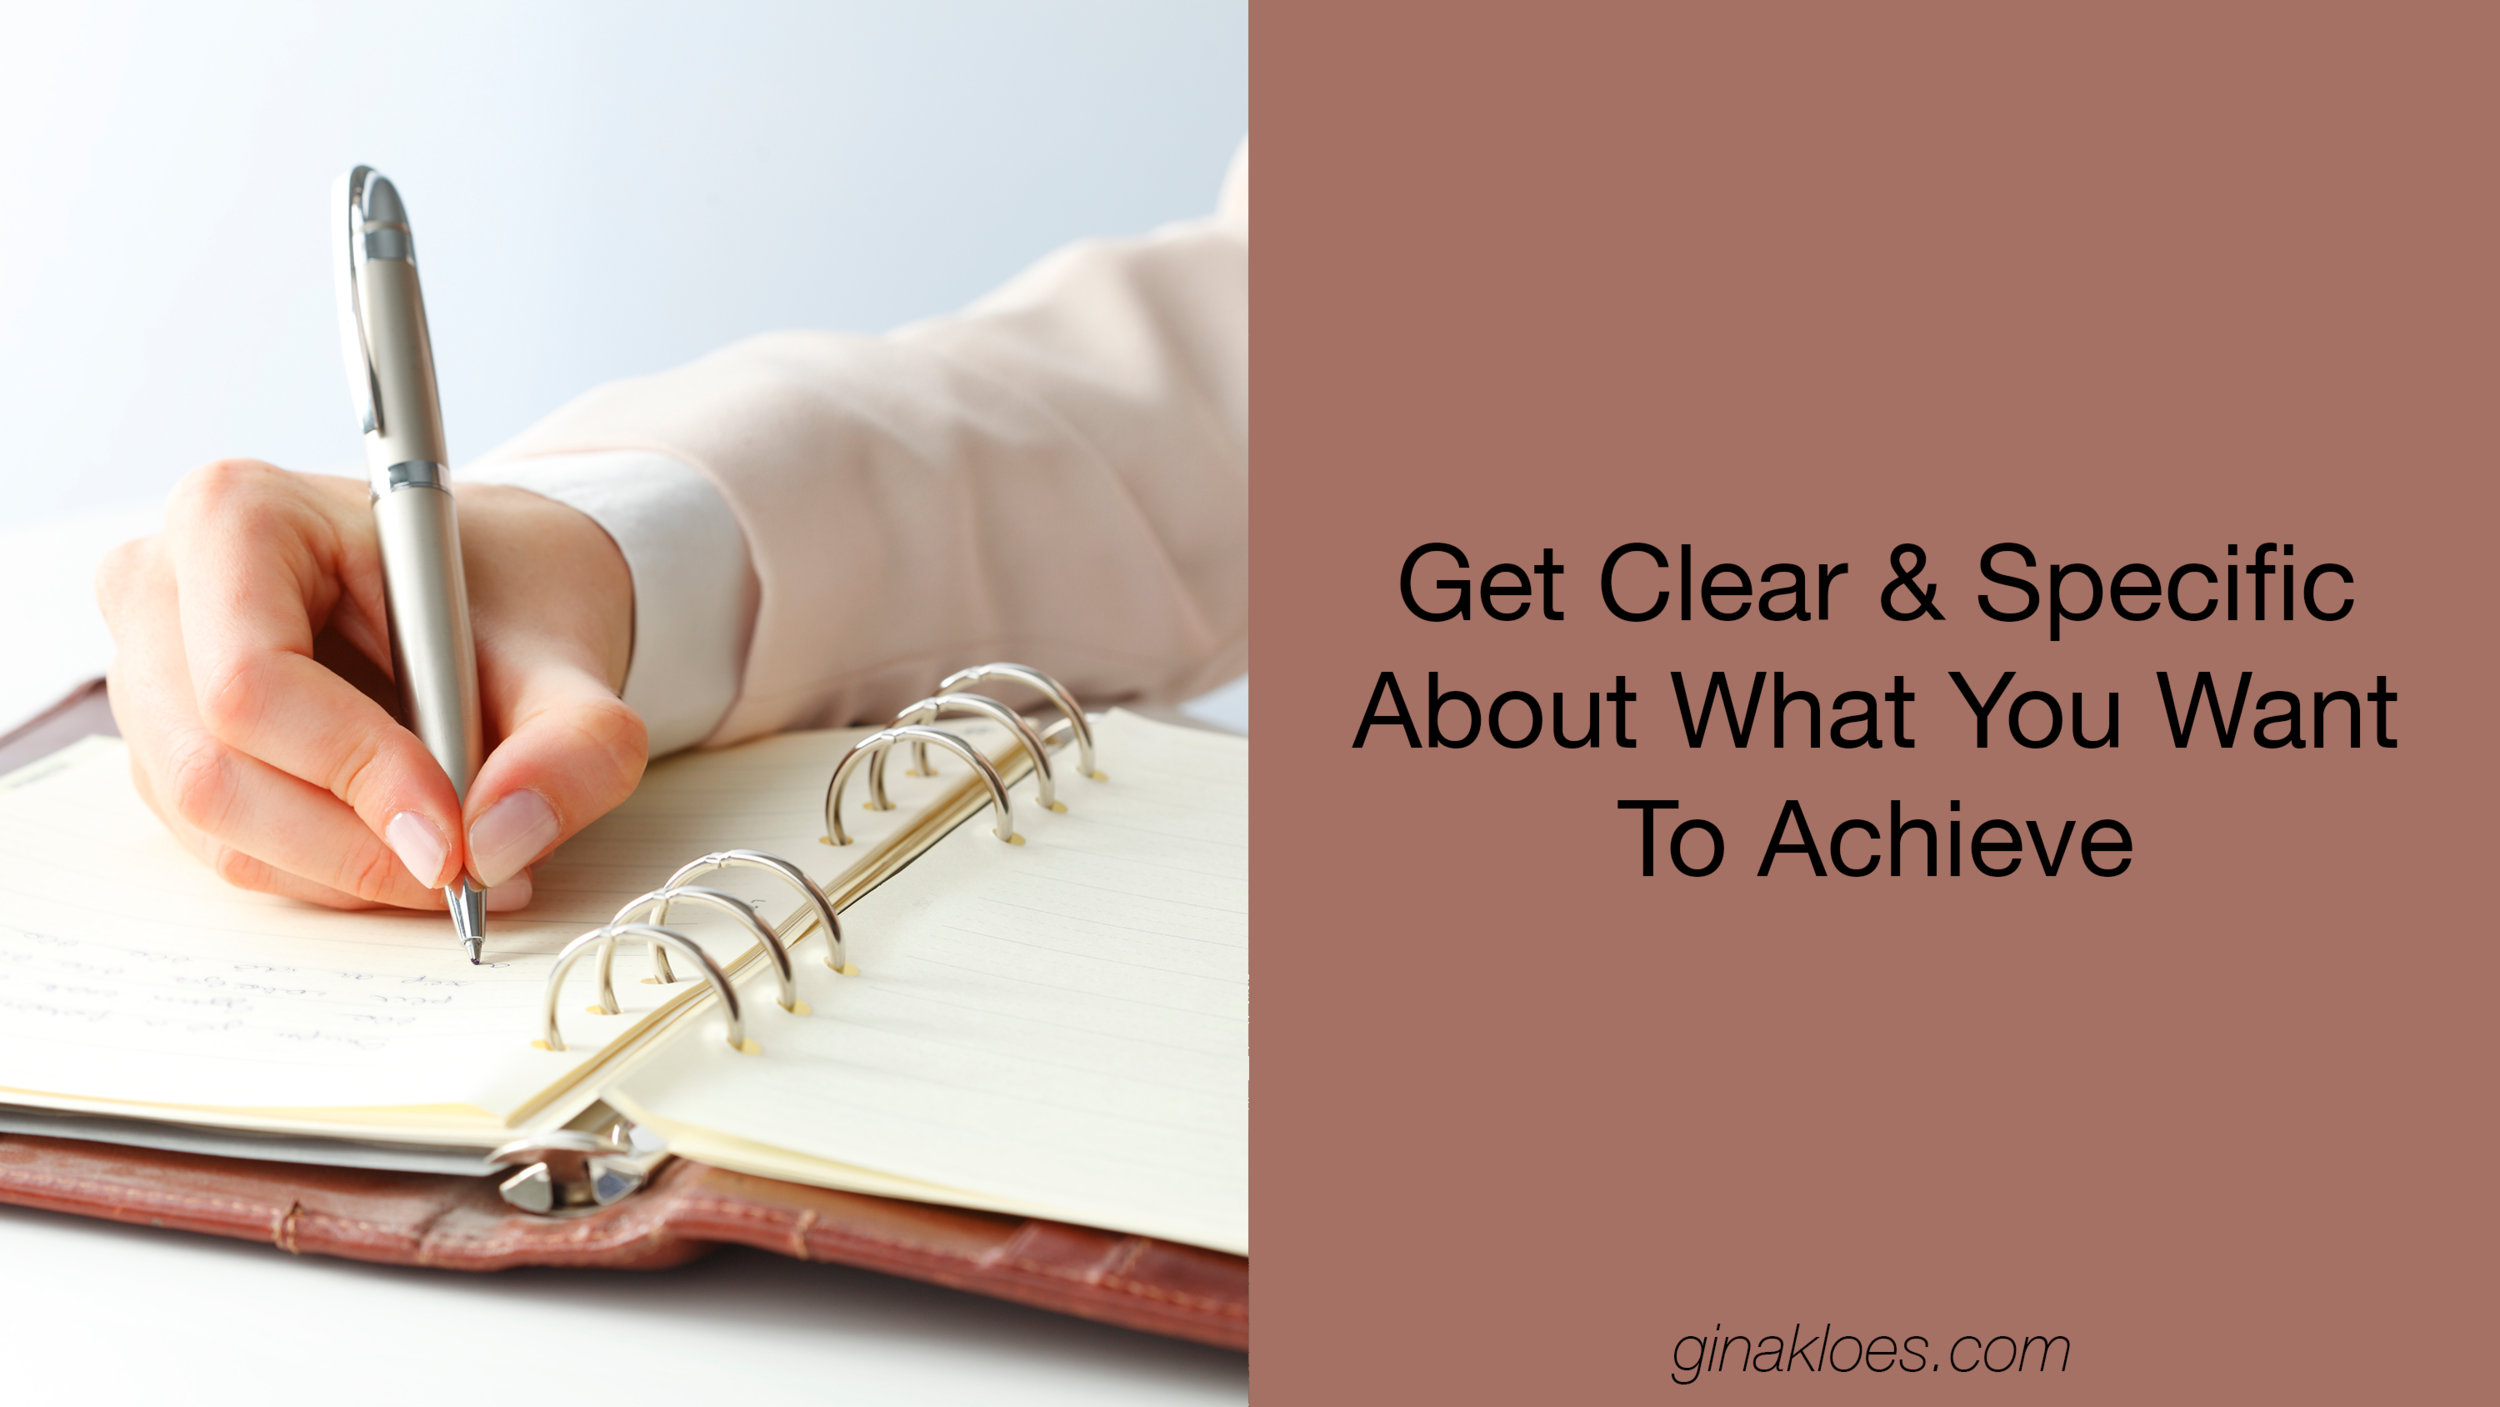 Gina Kloes - Accelerated Action P1 - Blog Images.png